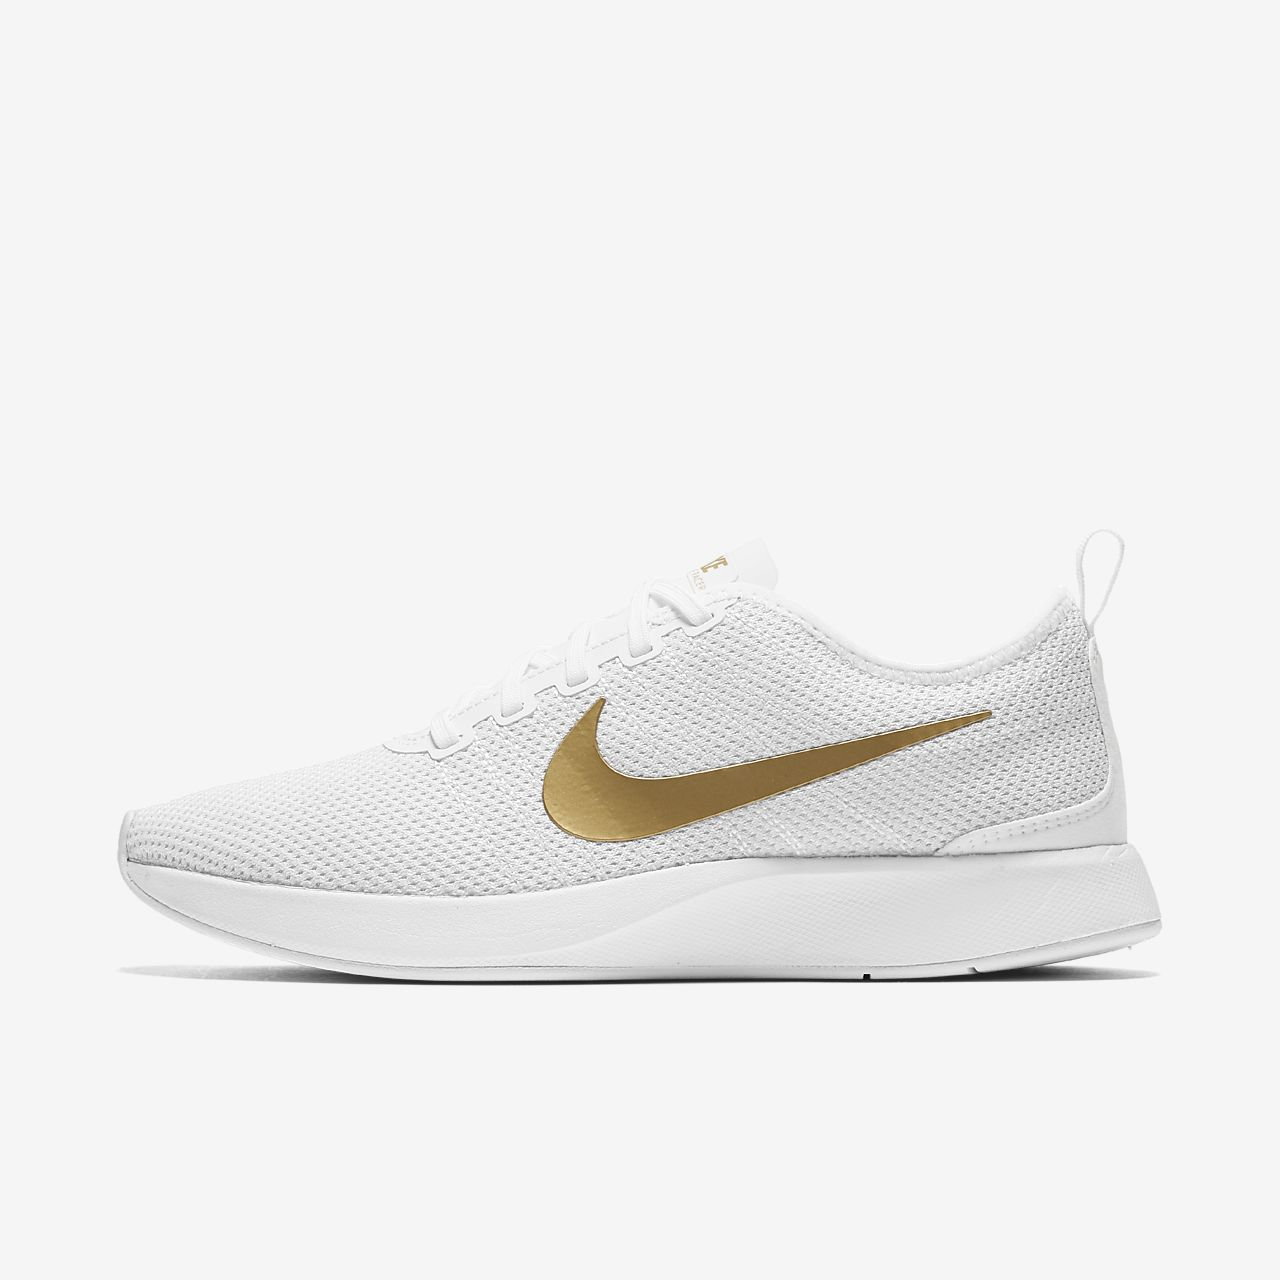 Nike Chaussures Double Racer Ton Gris Blanc FKHGdQ